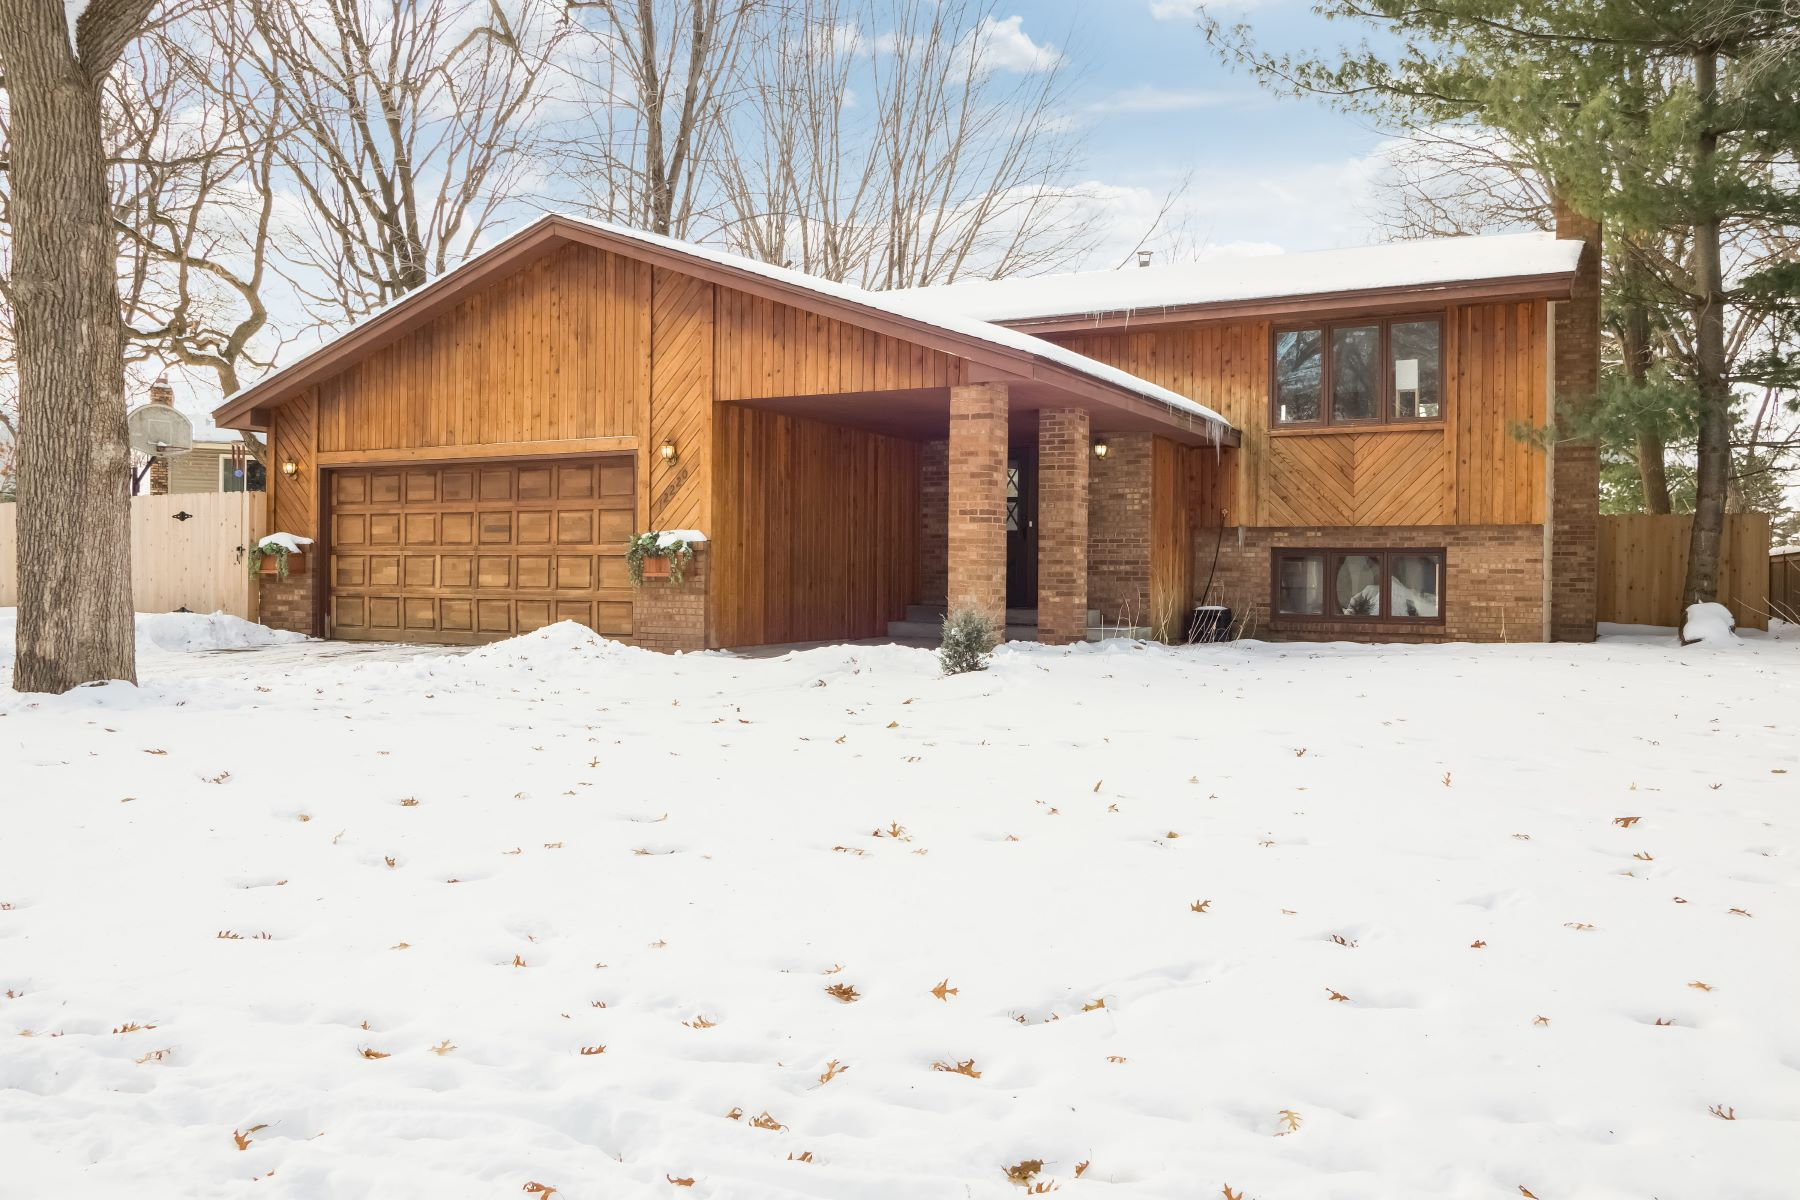 Single Family Homes for Sale at 12220 Sycamore Street NW Coon Rapids, Minnesota 55448 United States